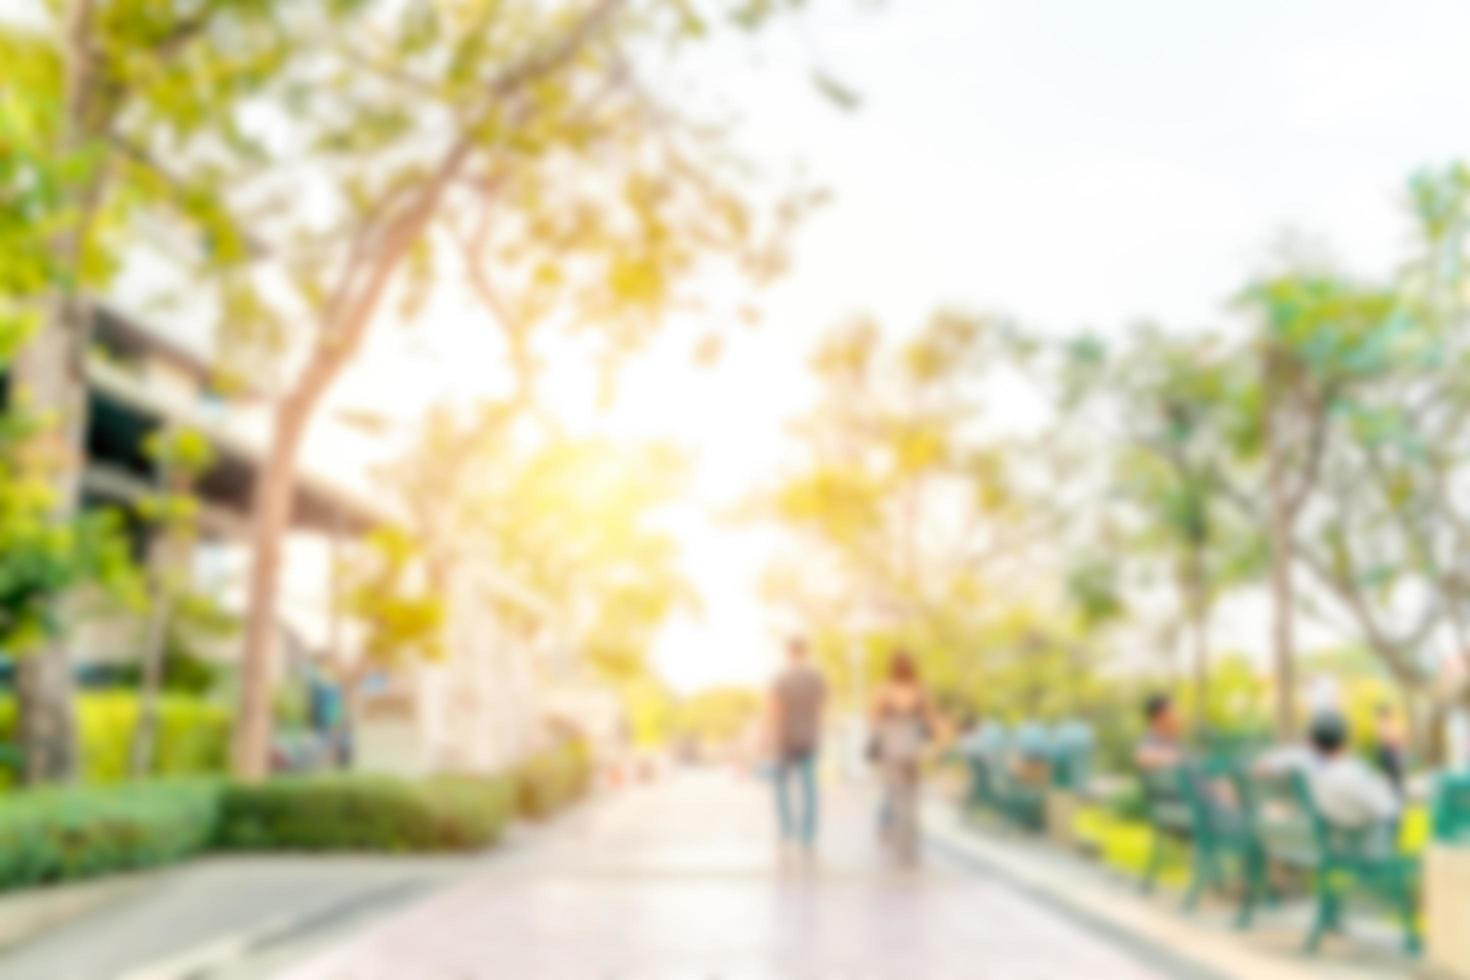 Abstract blurred image of people relaxing in the park photo